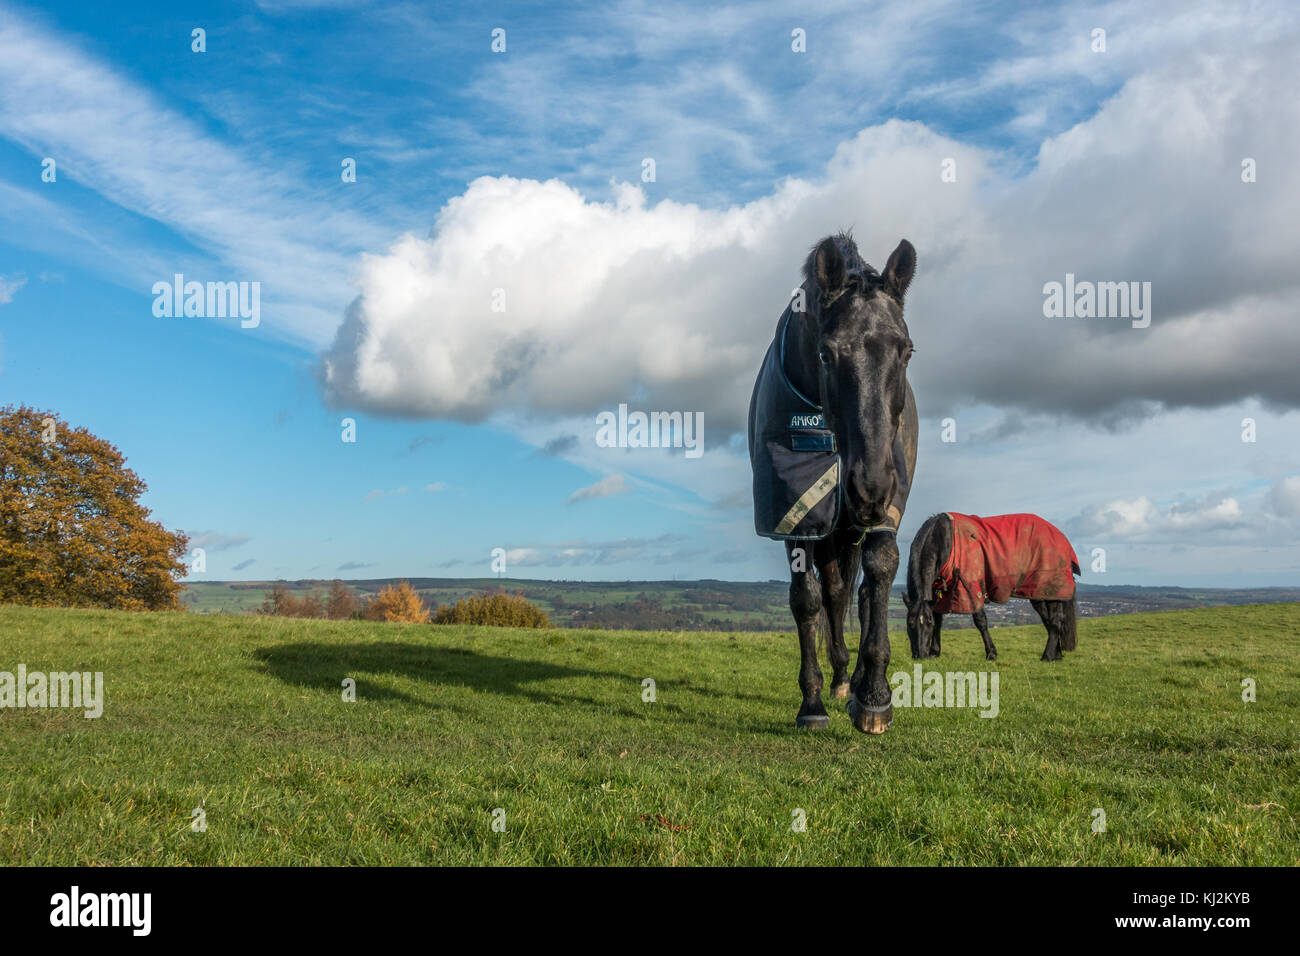 Two horses in a field on a sunny cold day wearing Amigo horse coats - Stock Image